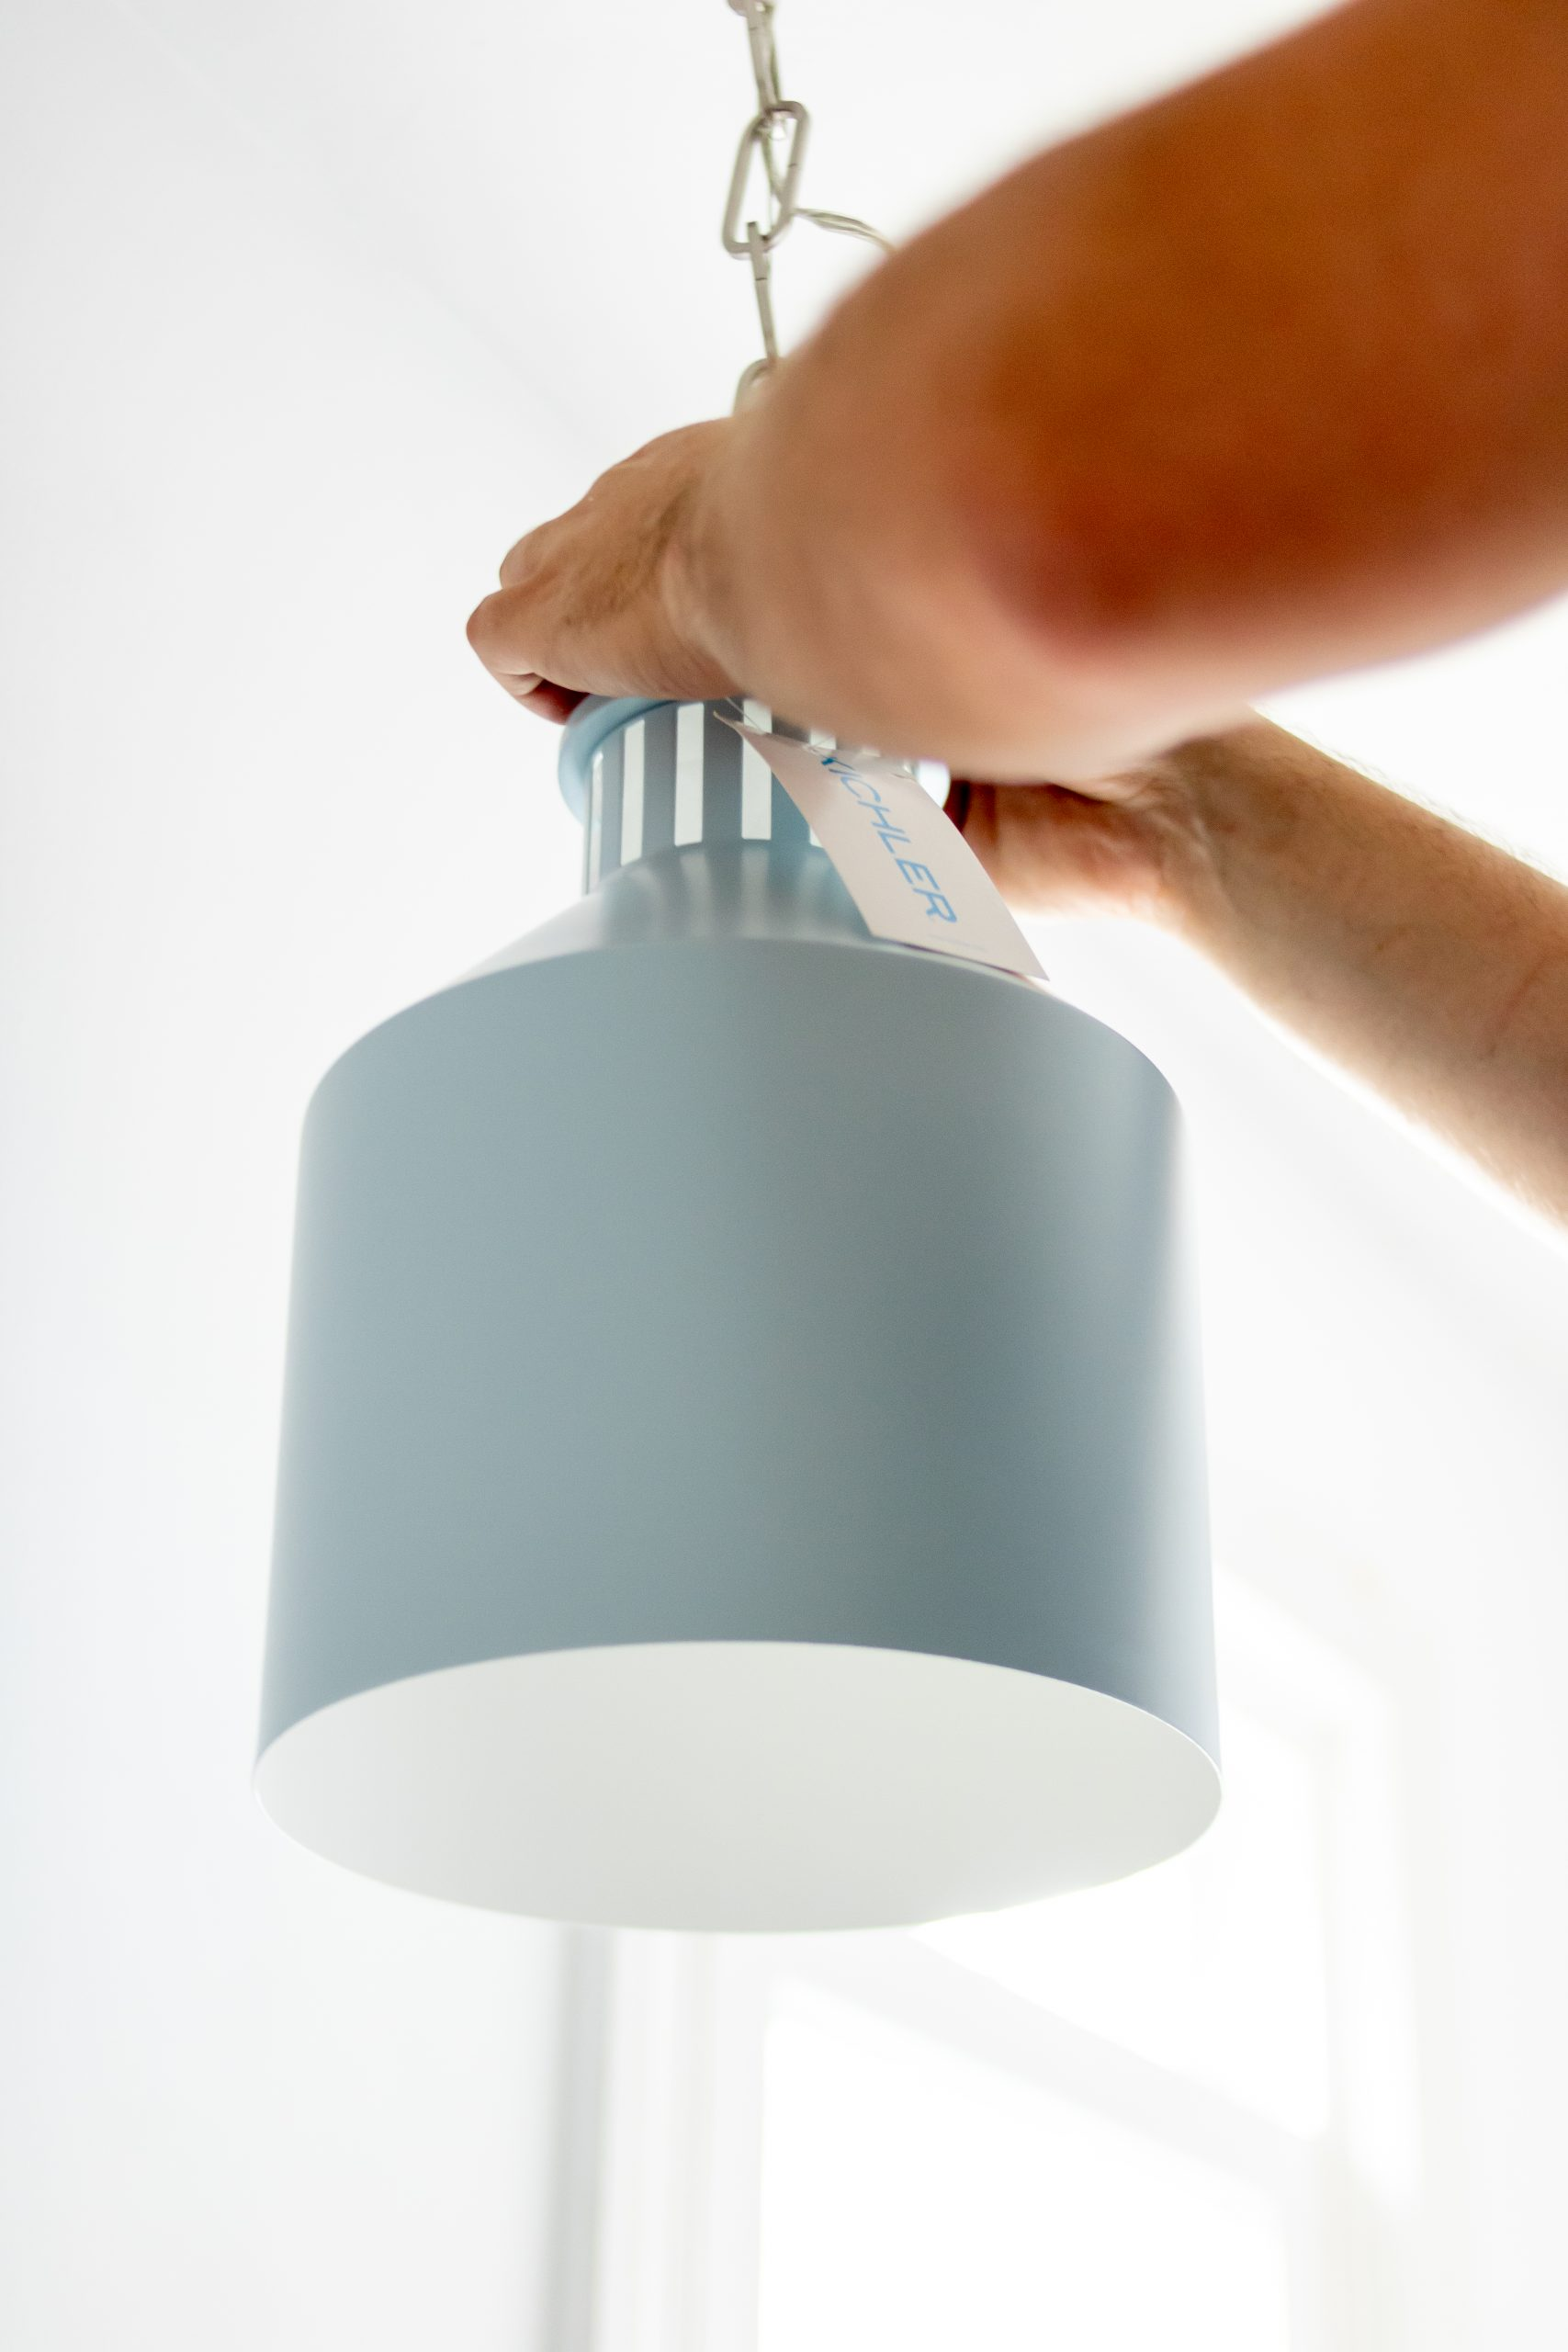 Montauk Pendant Light Fixture in Light Blue Kichler Lighting